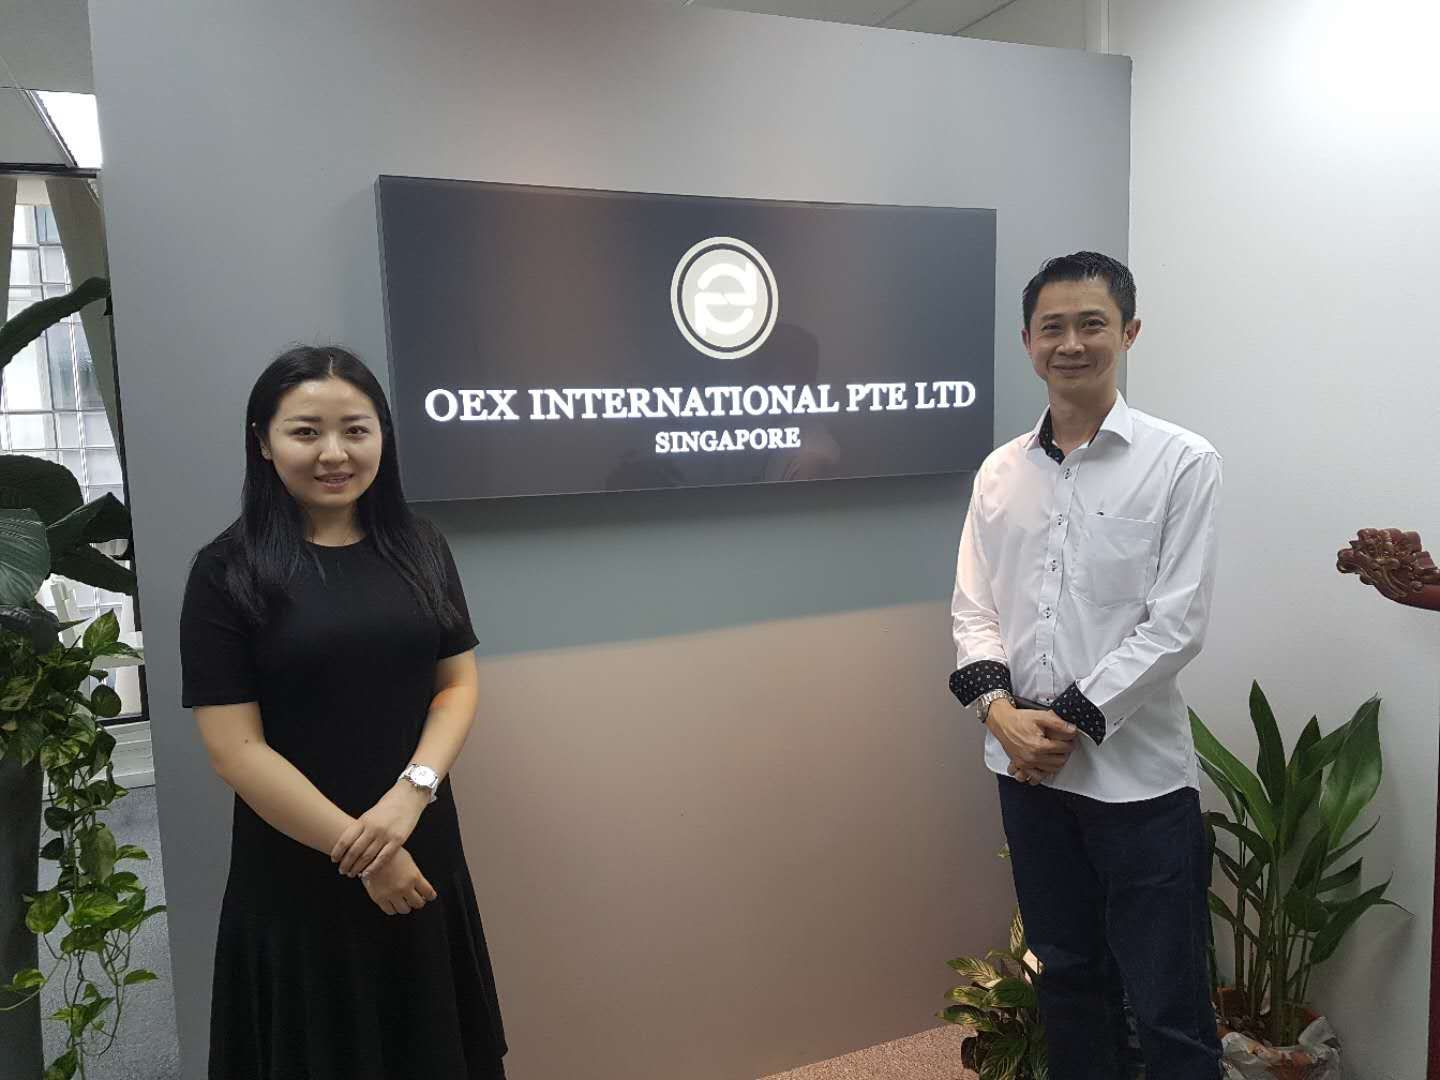 Ms Katrina, CEO of OEX International and Mr Andy Loh, CEO of Puregold.sg Group